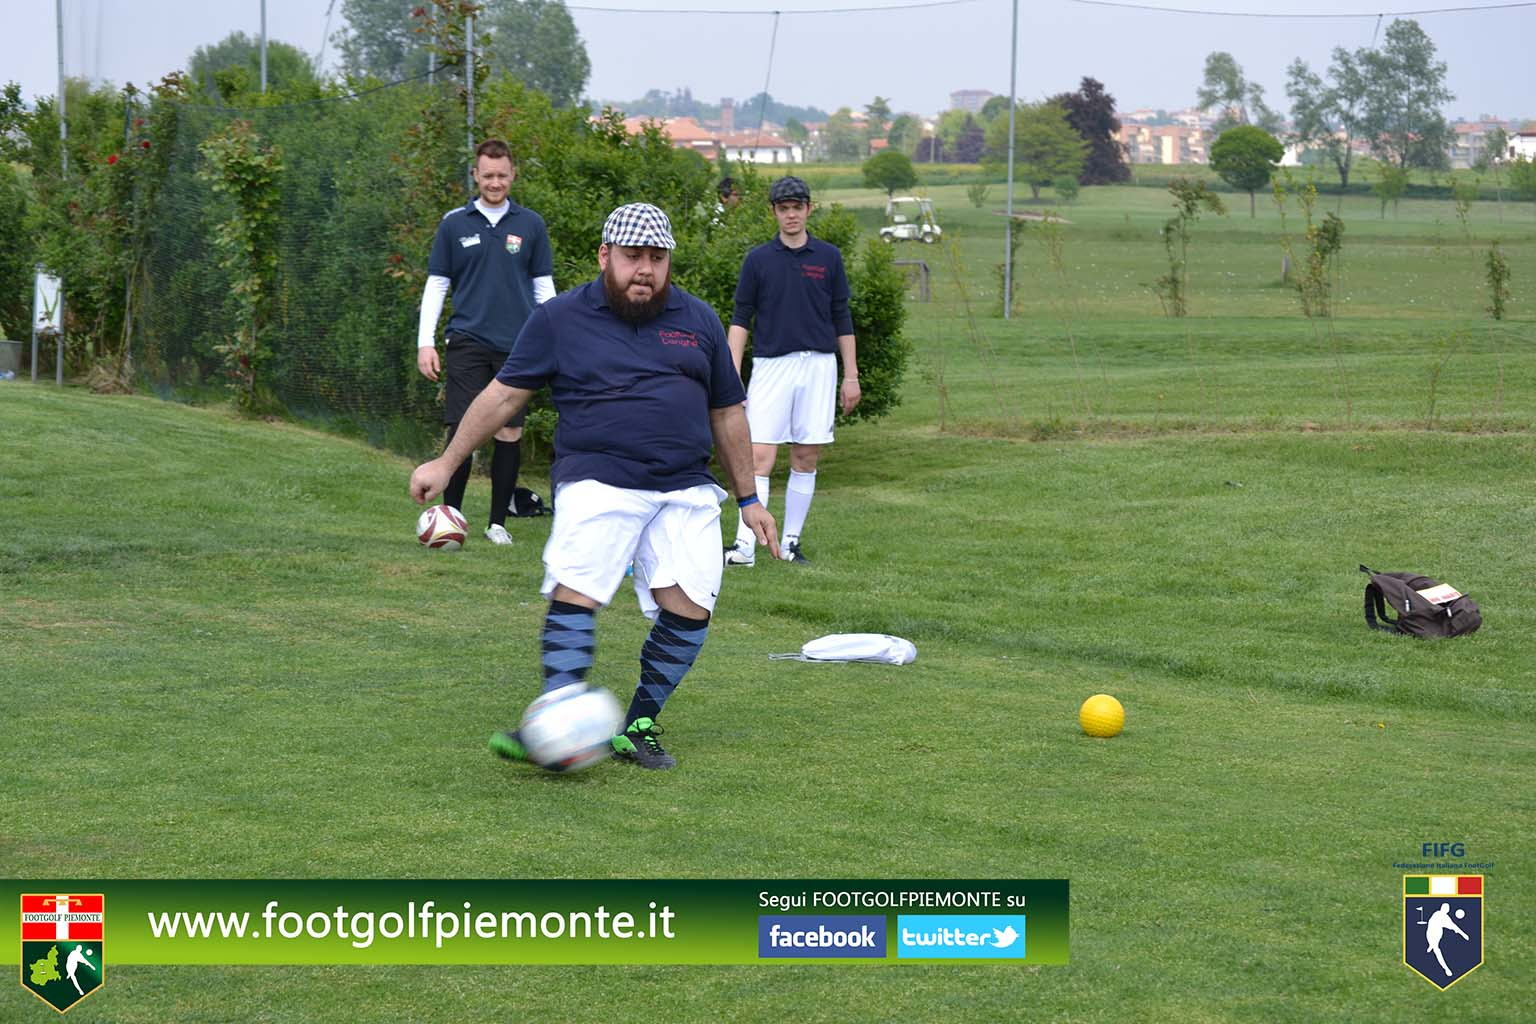 FOTO 9 Regions' Cup Footgolf Piemonte 2016 Golf Città di Asti (At) 30apr16-74